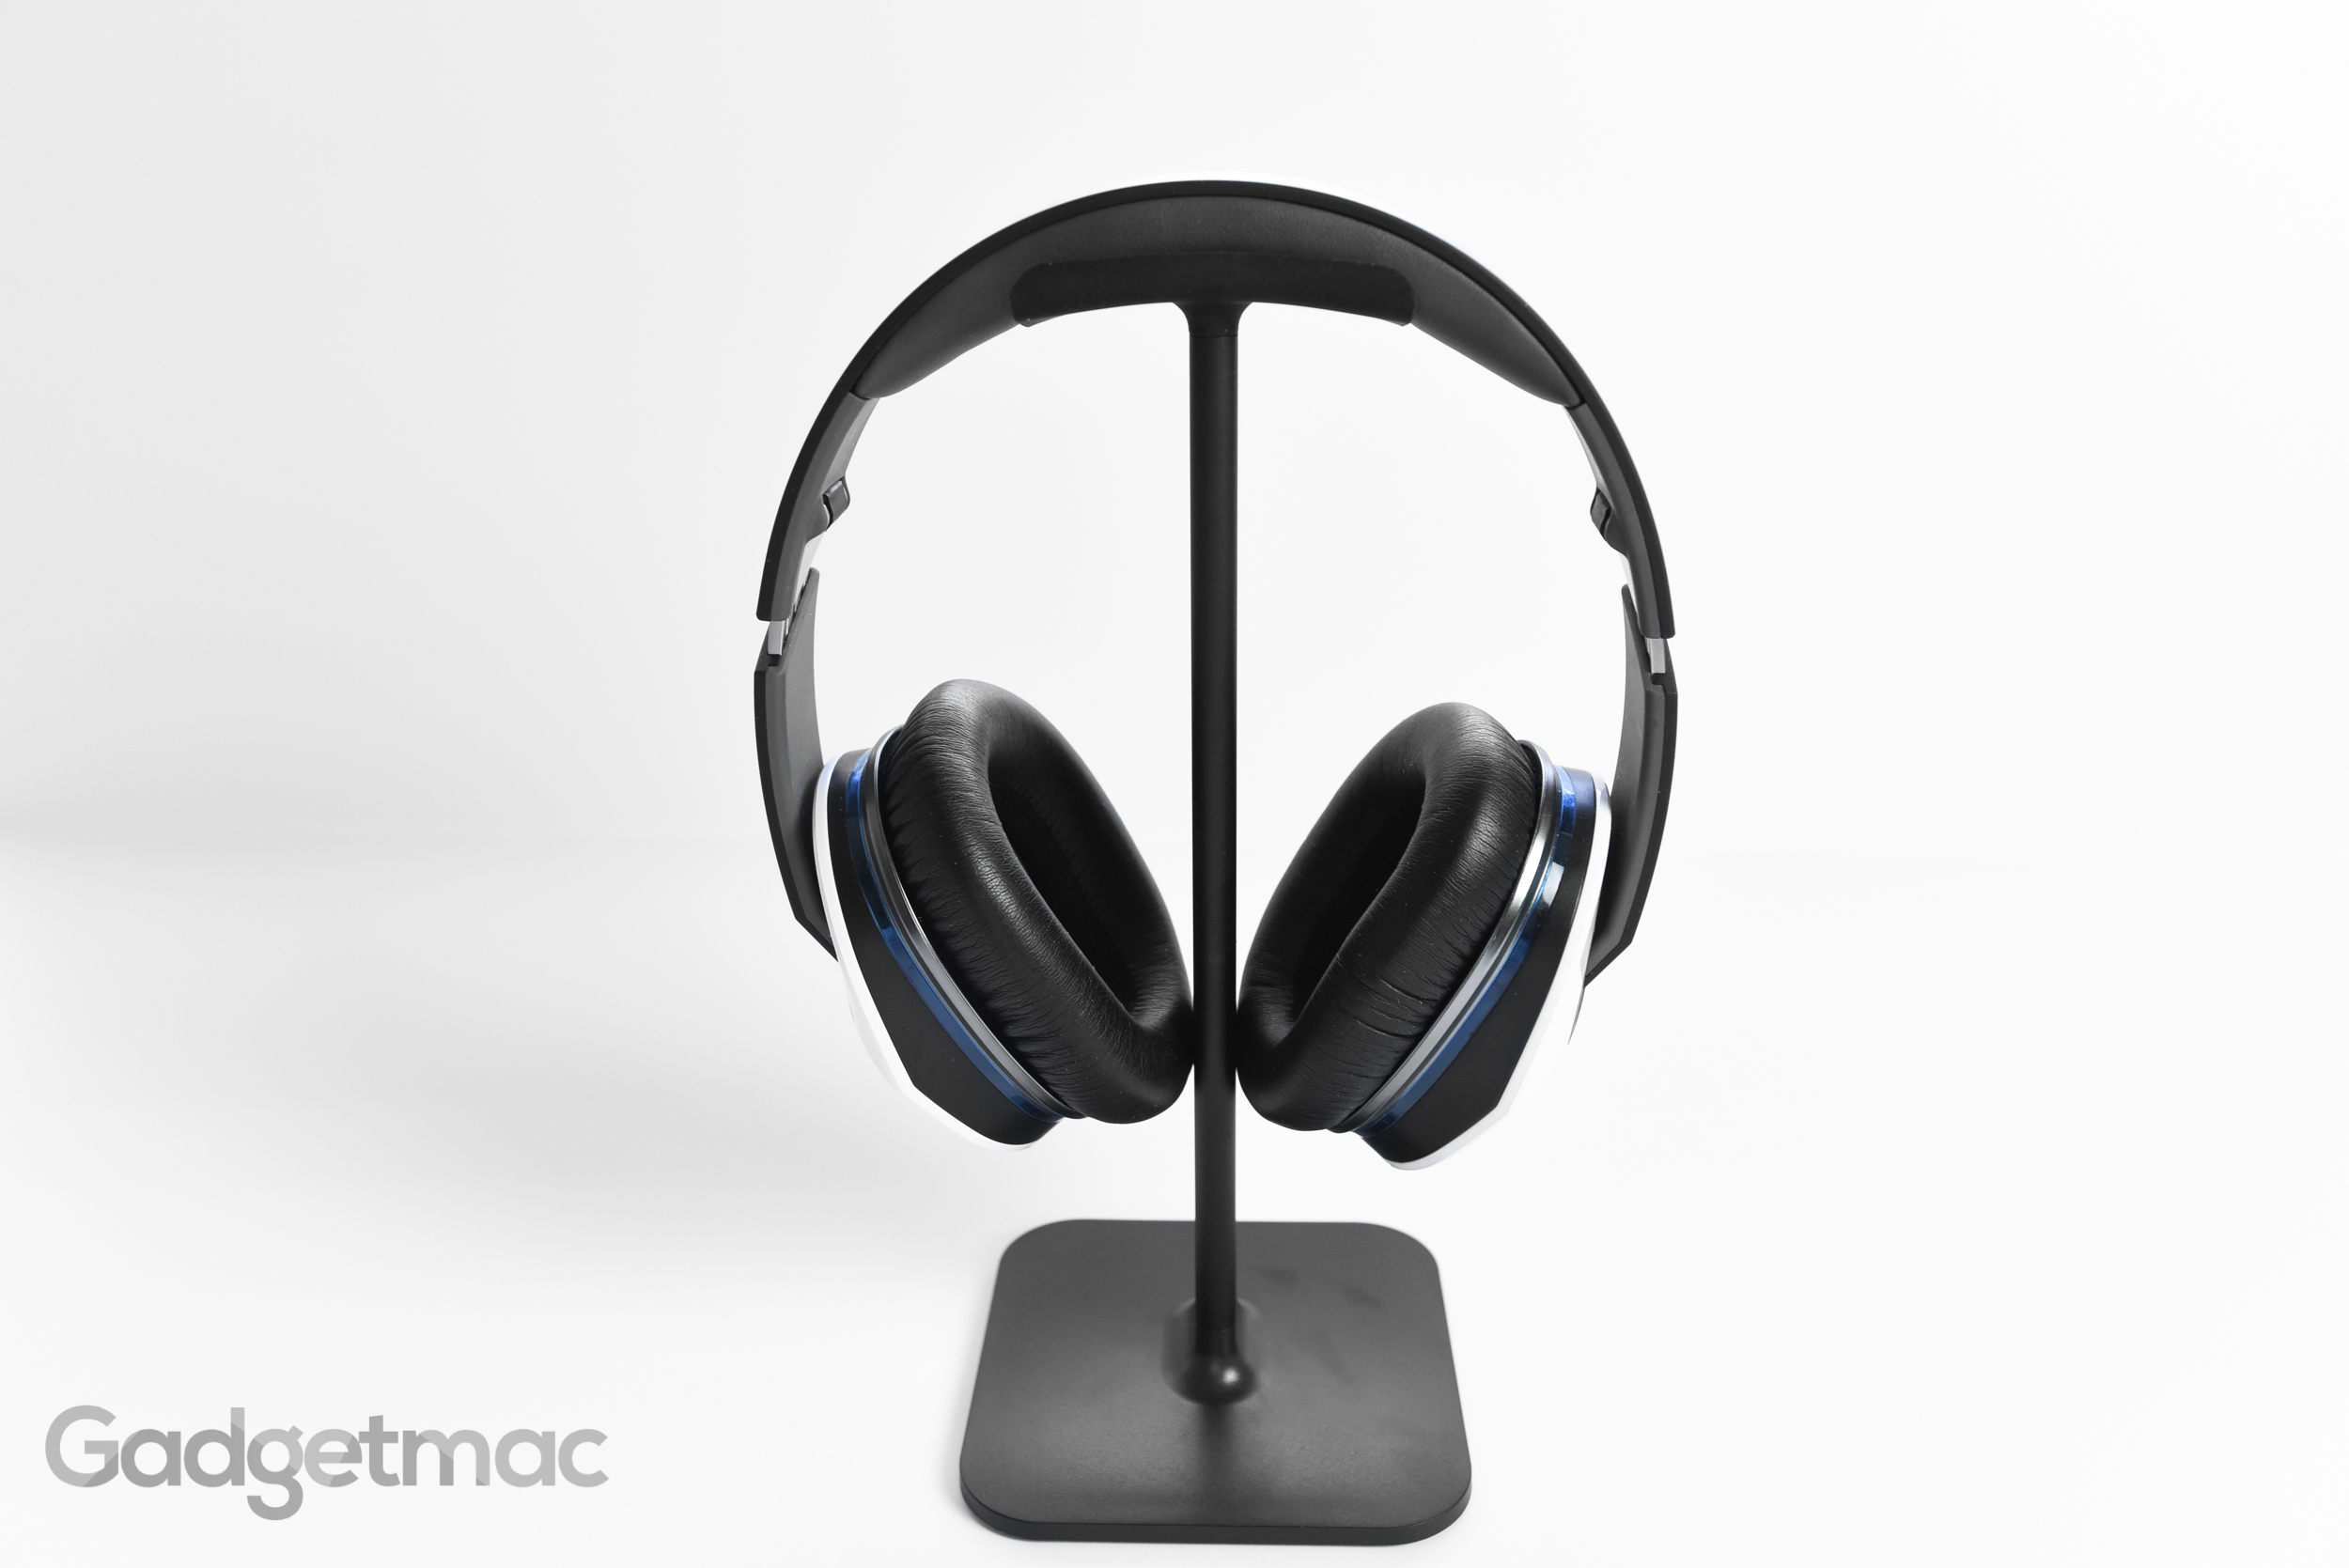 bluelounge_posto_headphone_stand_with_large_over_ear_headphones.jpg